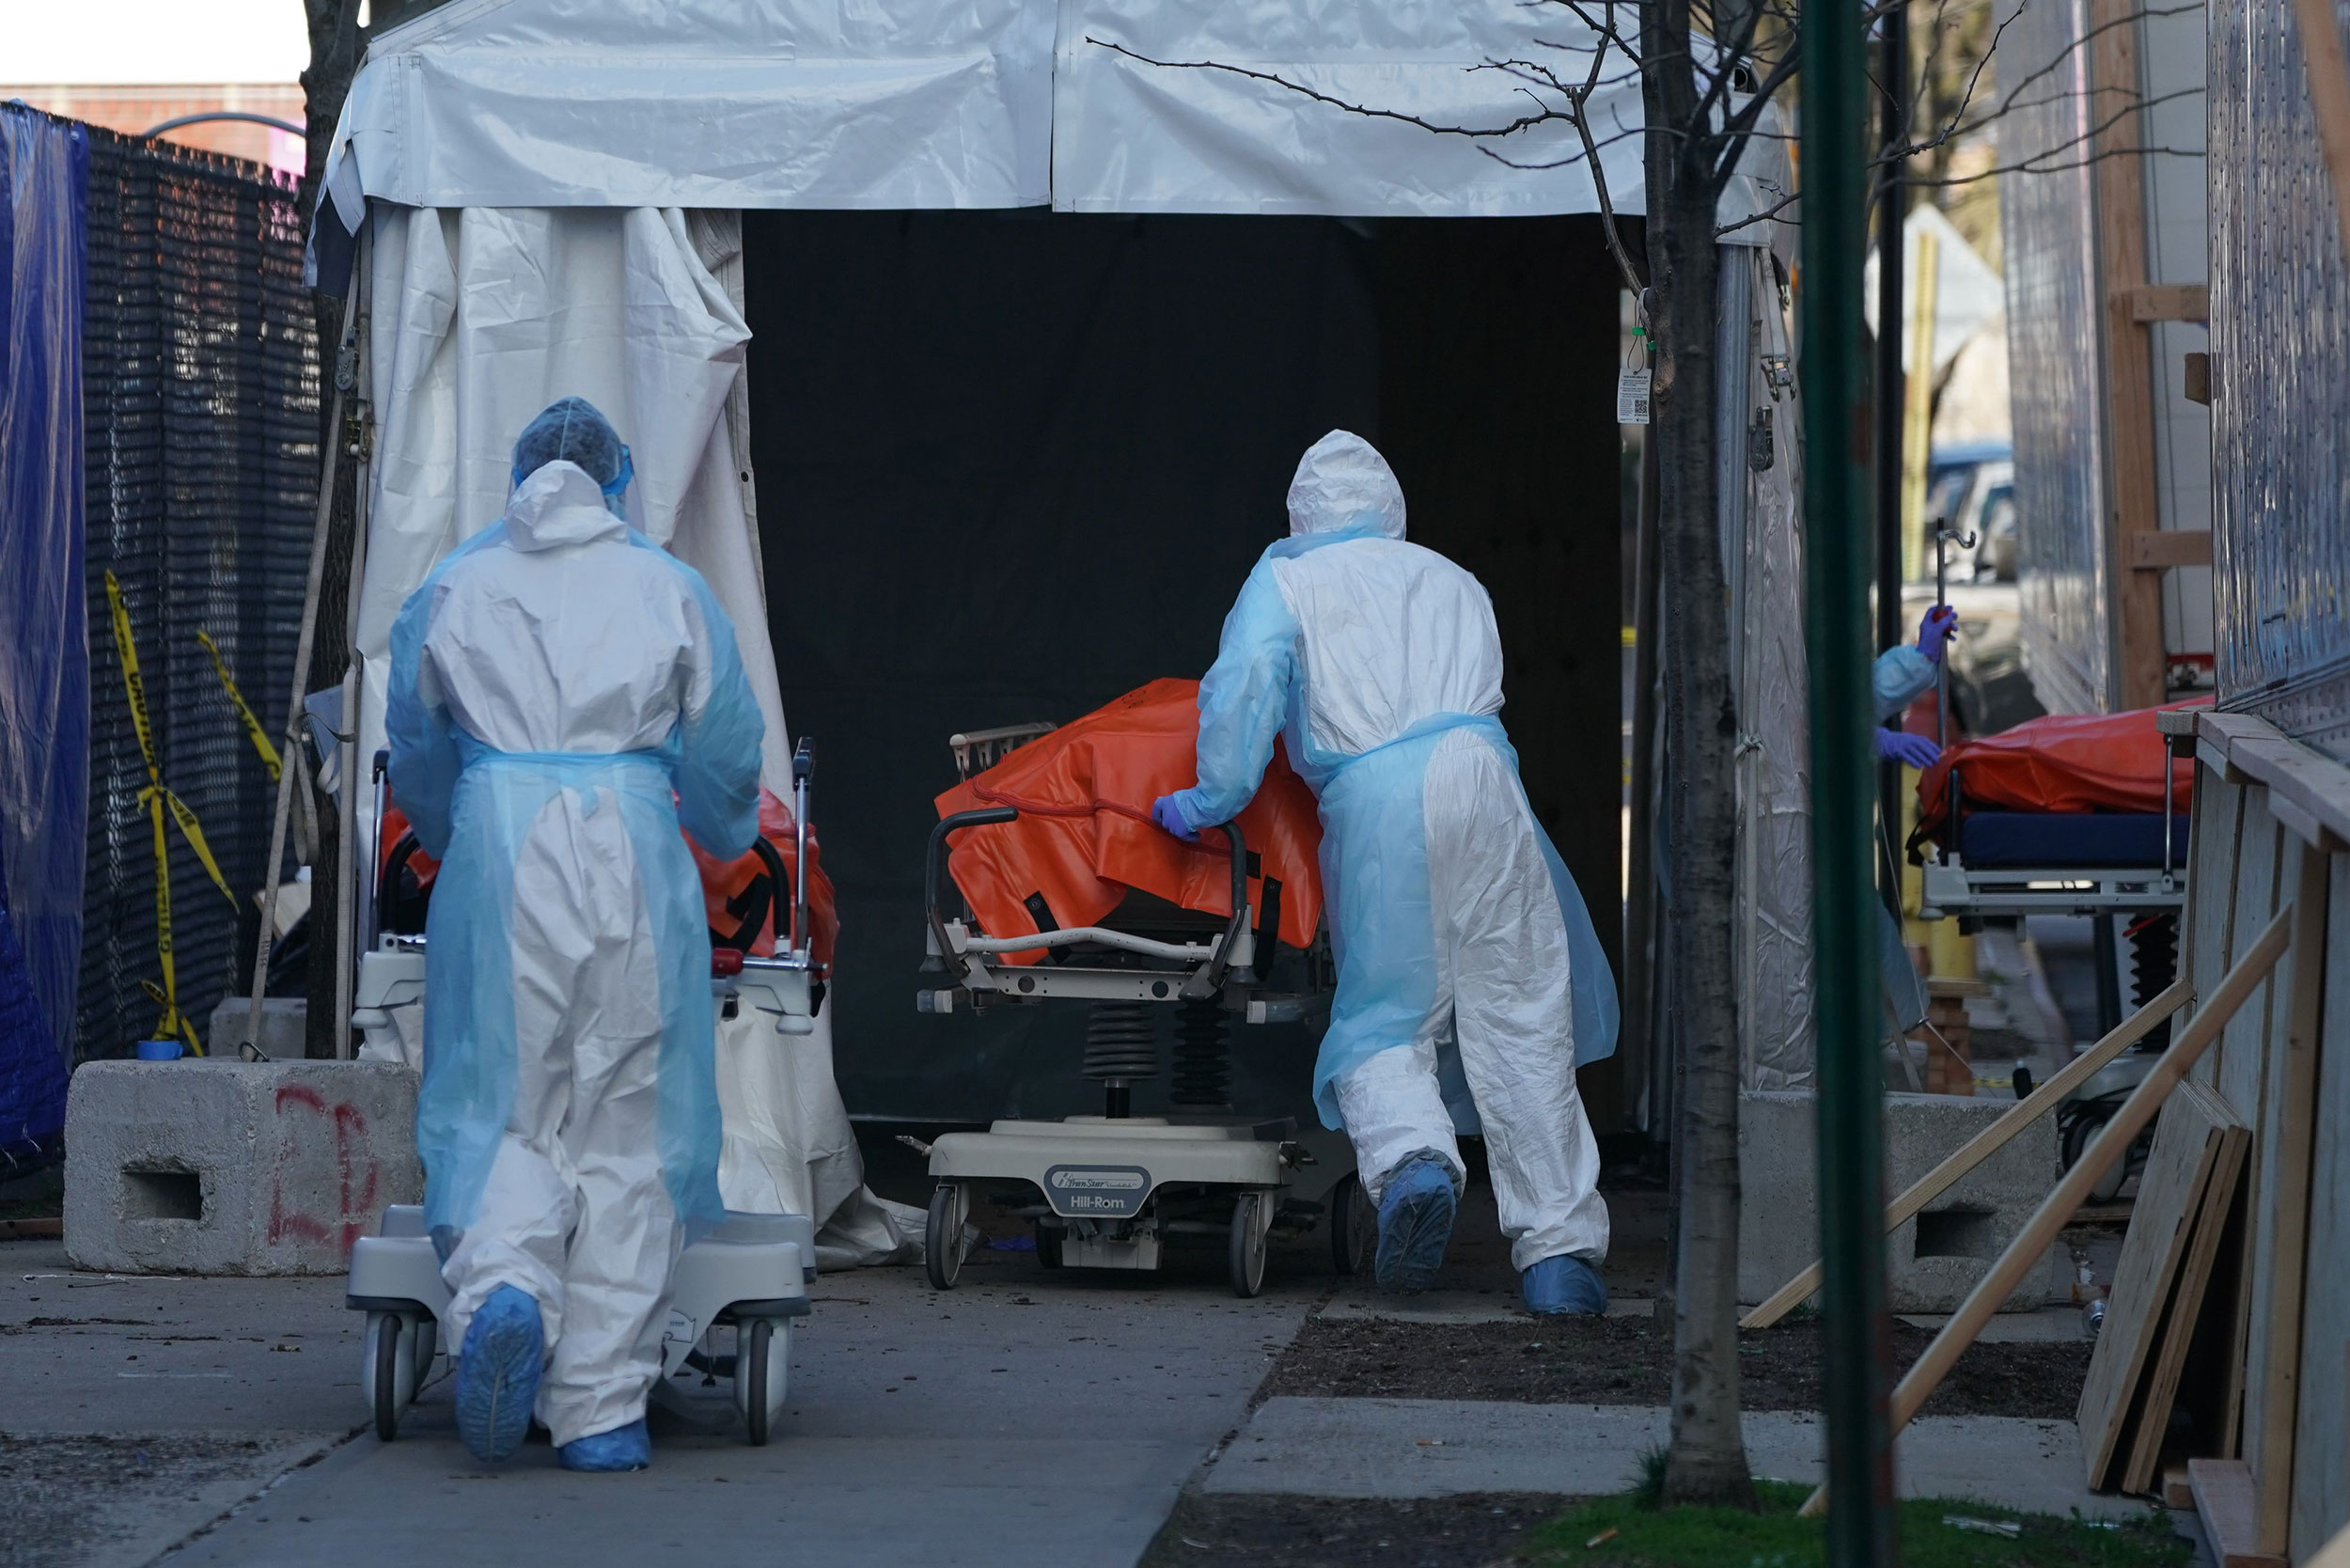 A difficult week ahead in the coronavirus fight begins with a US death toll nearing 10,000